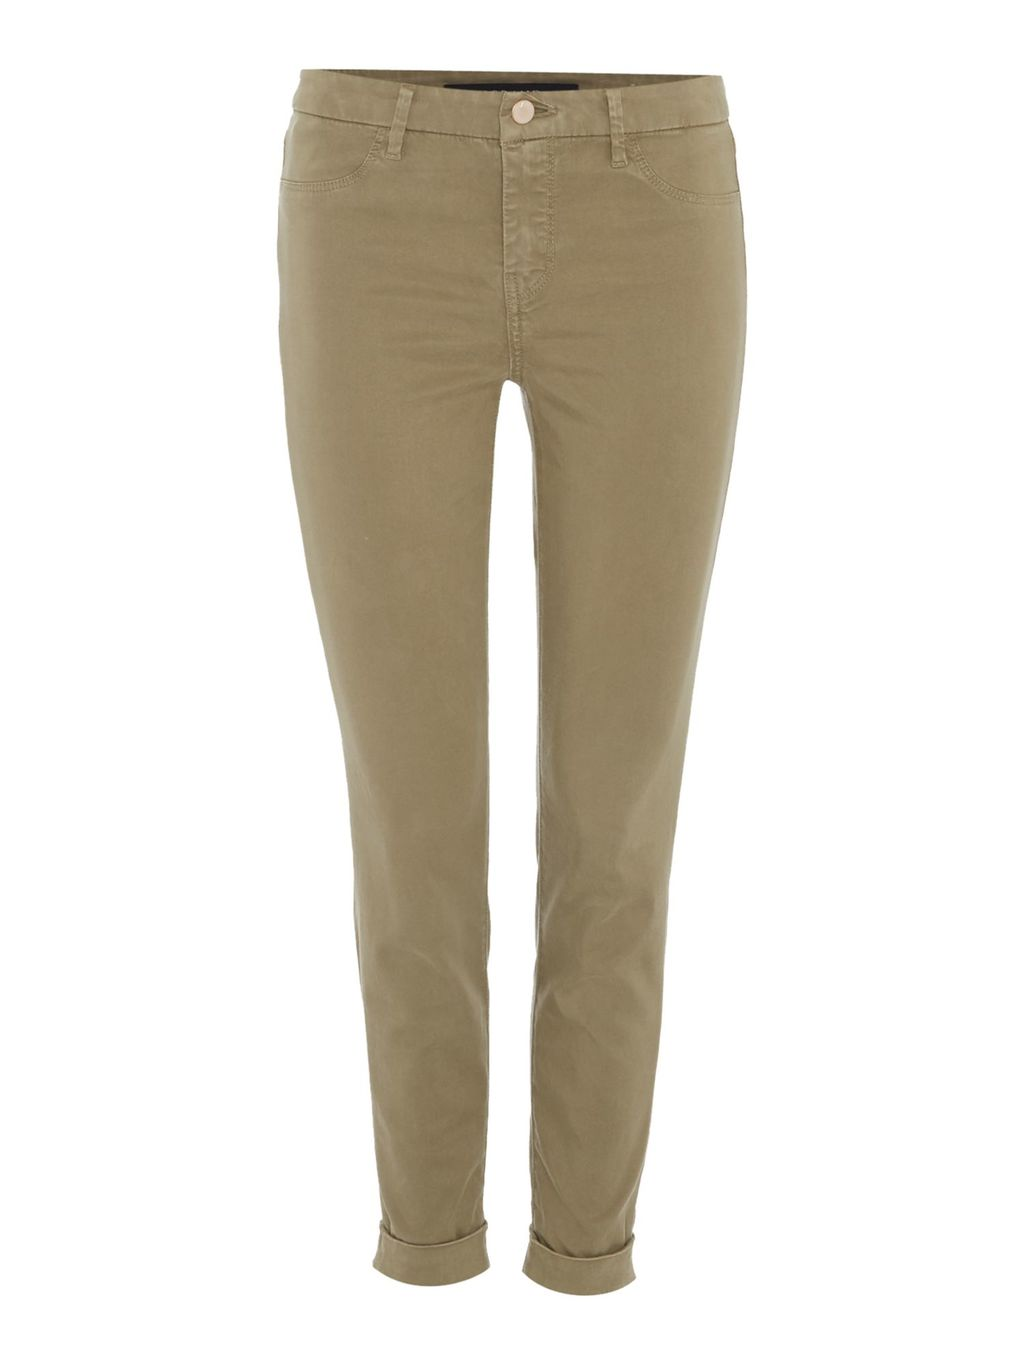 Anja Ankle Cuff Trouser, Brown - pattern: plain; waist: mid/regular rise; predominant colour: khaki; occasions: casual, creative work; length: ankle length; fibres: cotton - stretch; fit: slim leg; pattern type: fabric; texture group: woven light midweight; style: standard; season: s/s 2016; wardrobe: basic